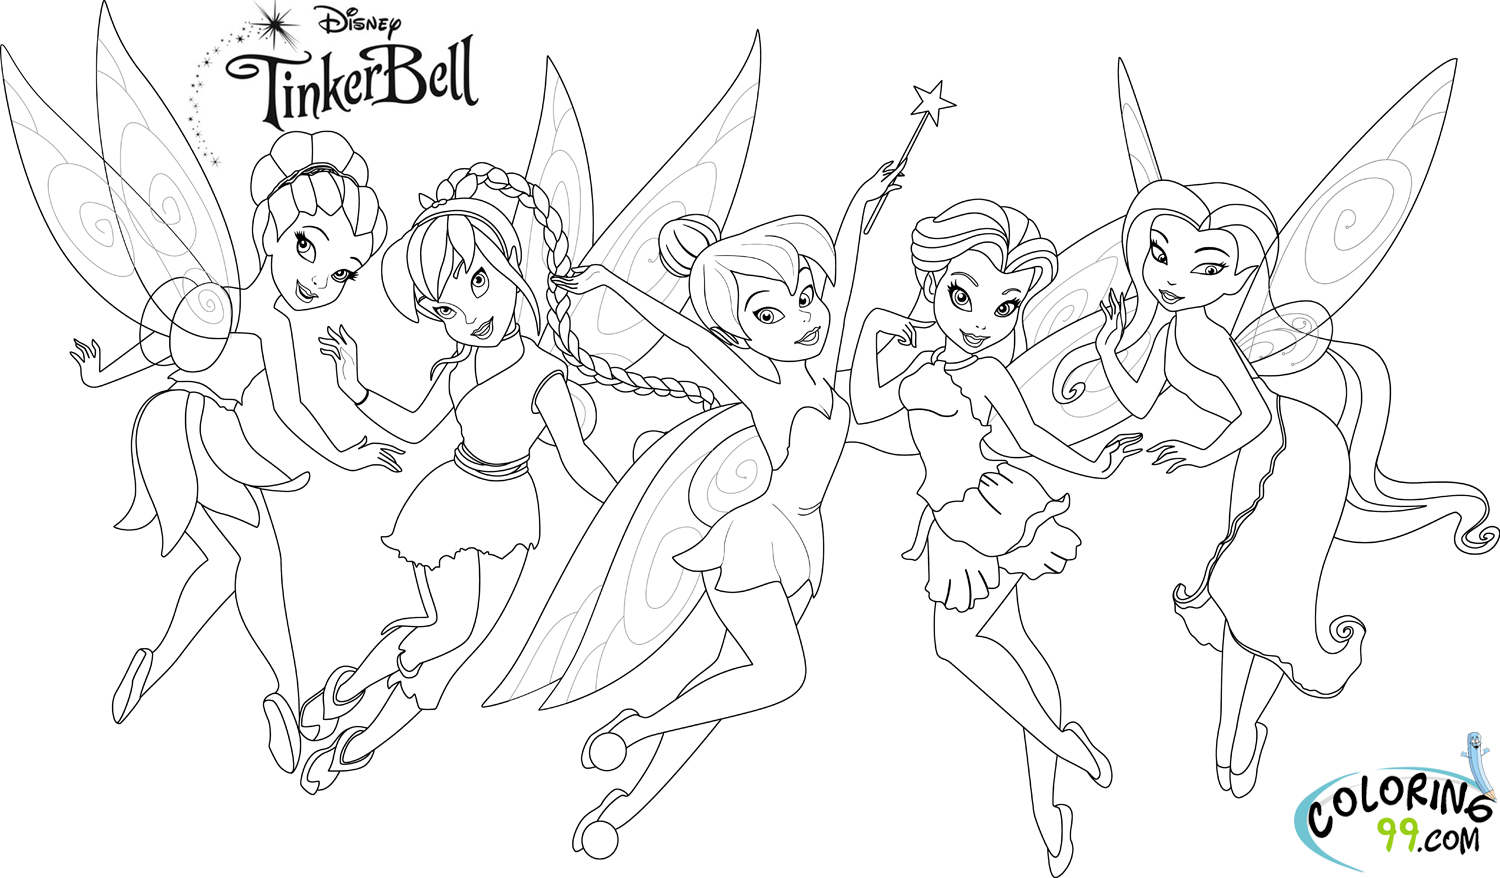 i love tinkerbell coloring pages - photo#35